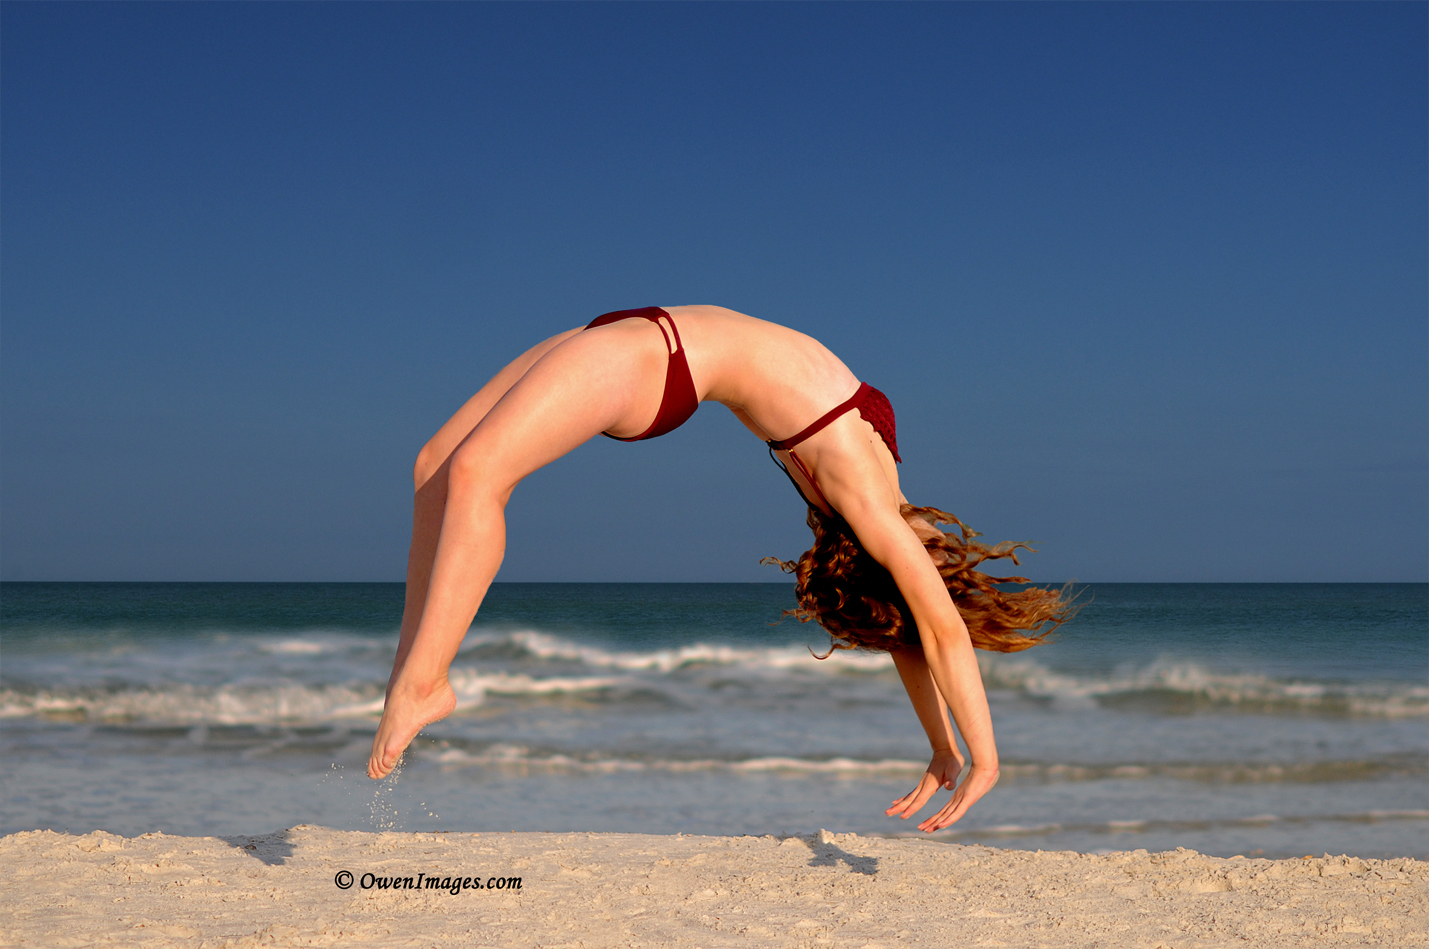 Athlete performing a back handspring on the beach shortly after sunrise. @OwenImages